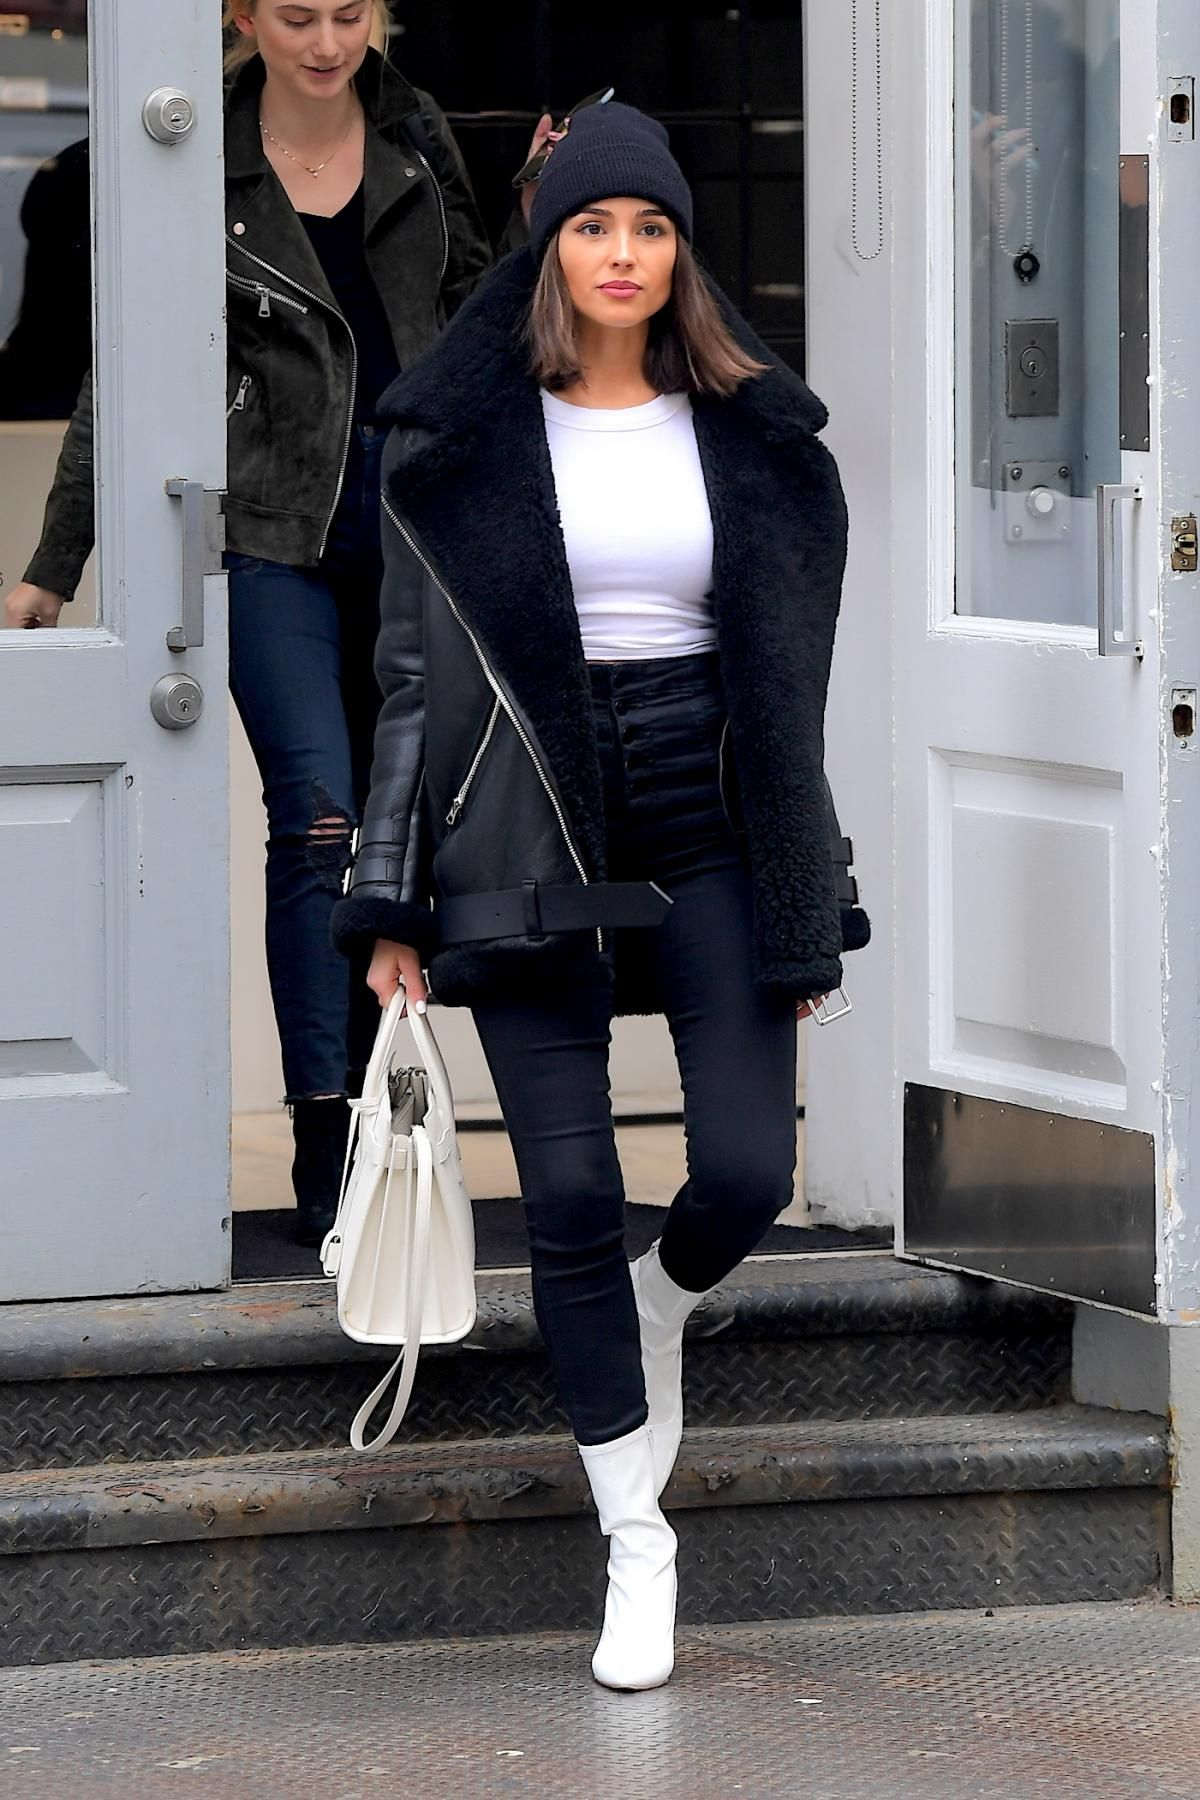 d8fadf7b1f3 Olivia Culpo wearing Saint Laurent Sac De Jour Bag